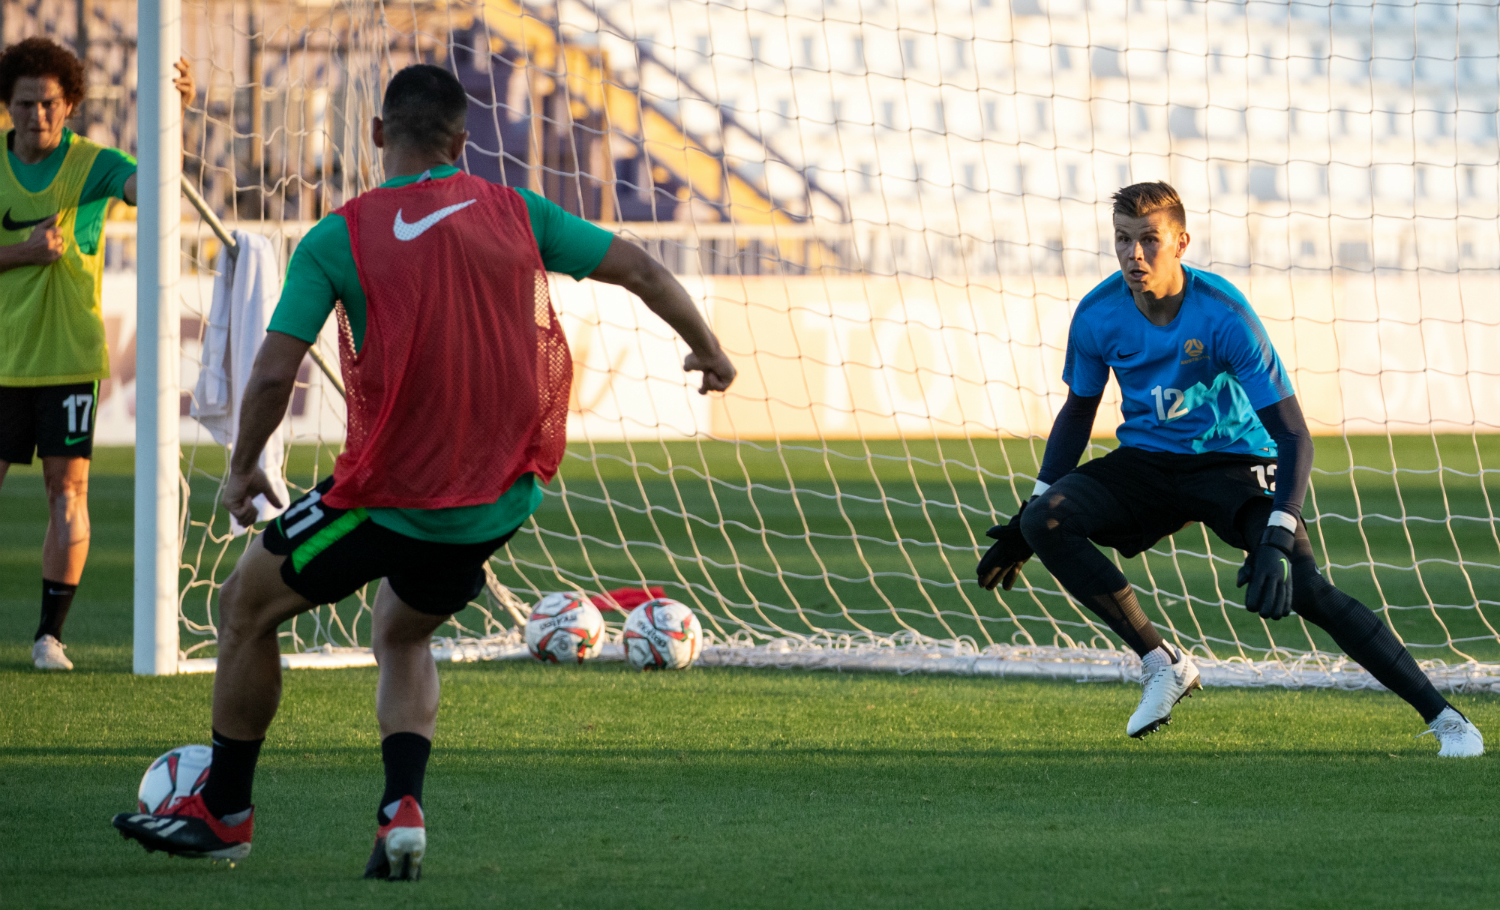 Nabbout and Langerak